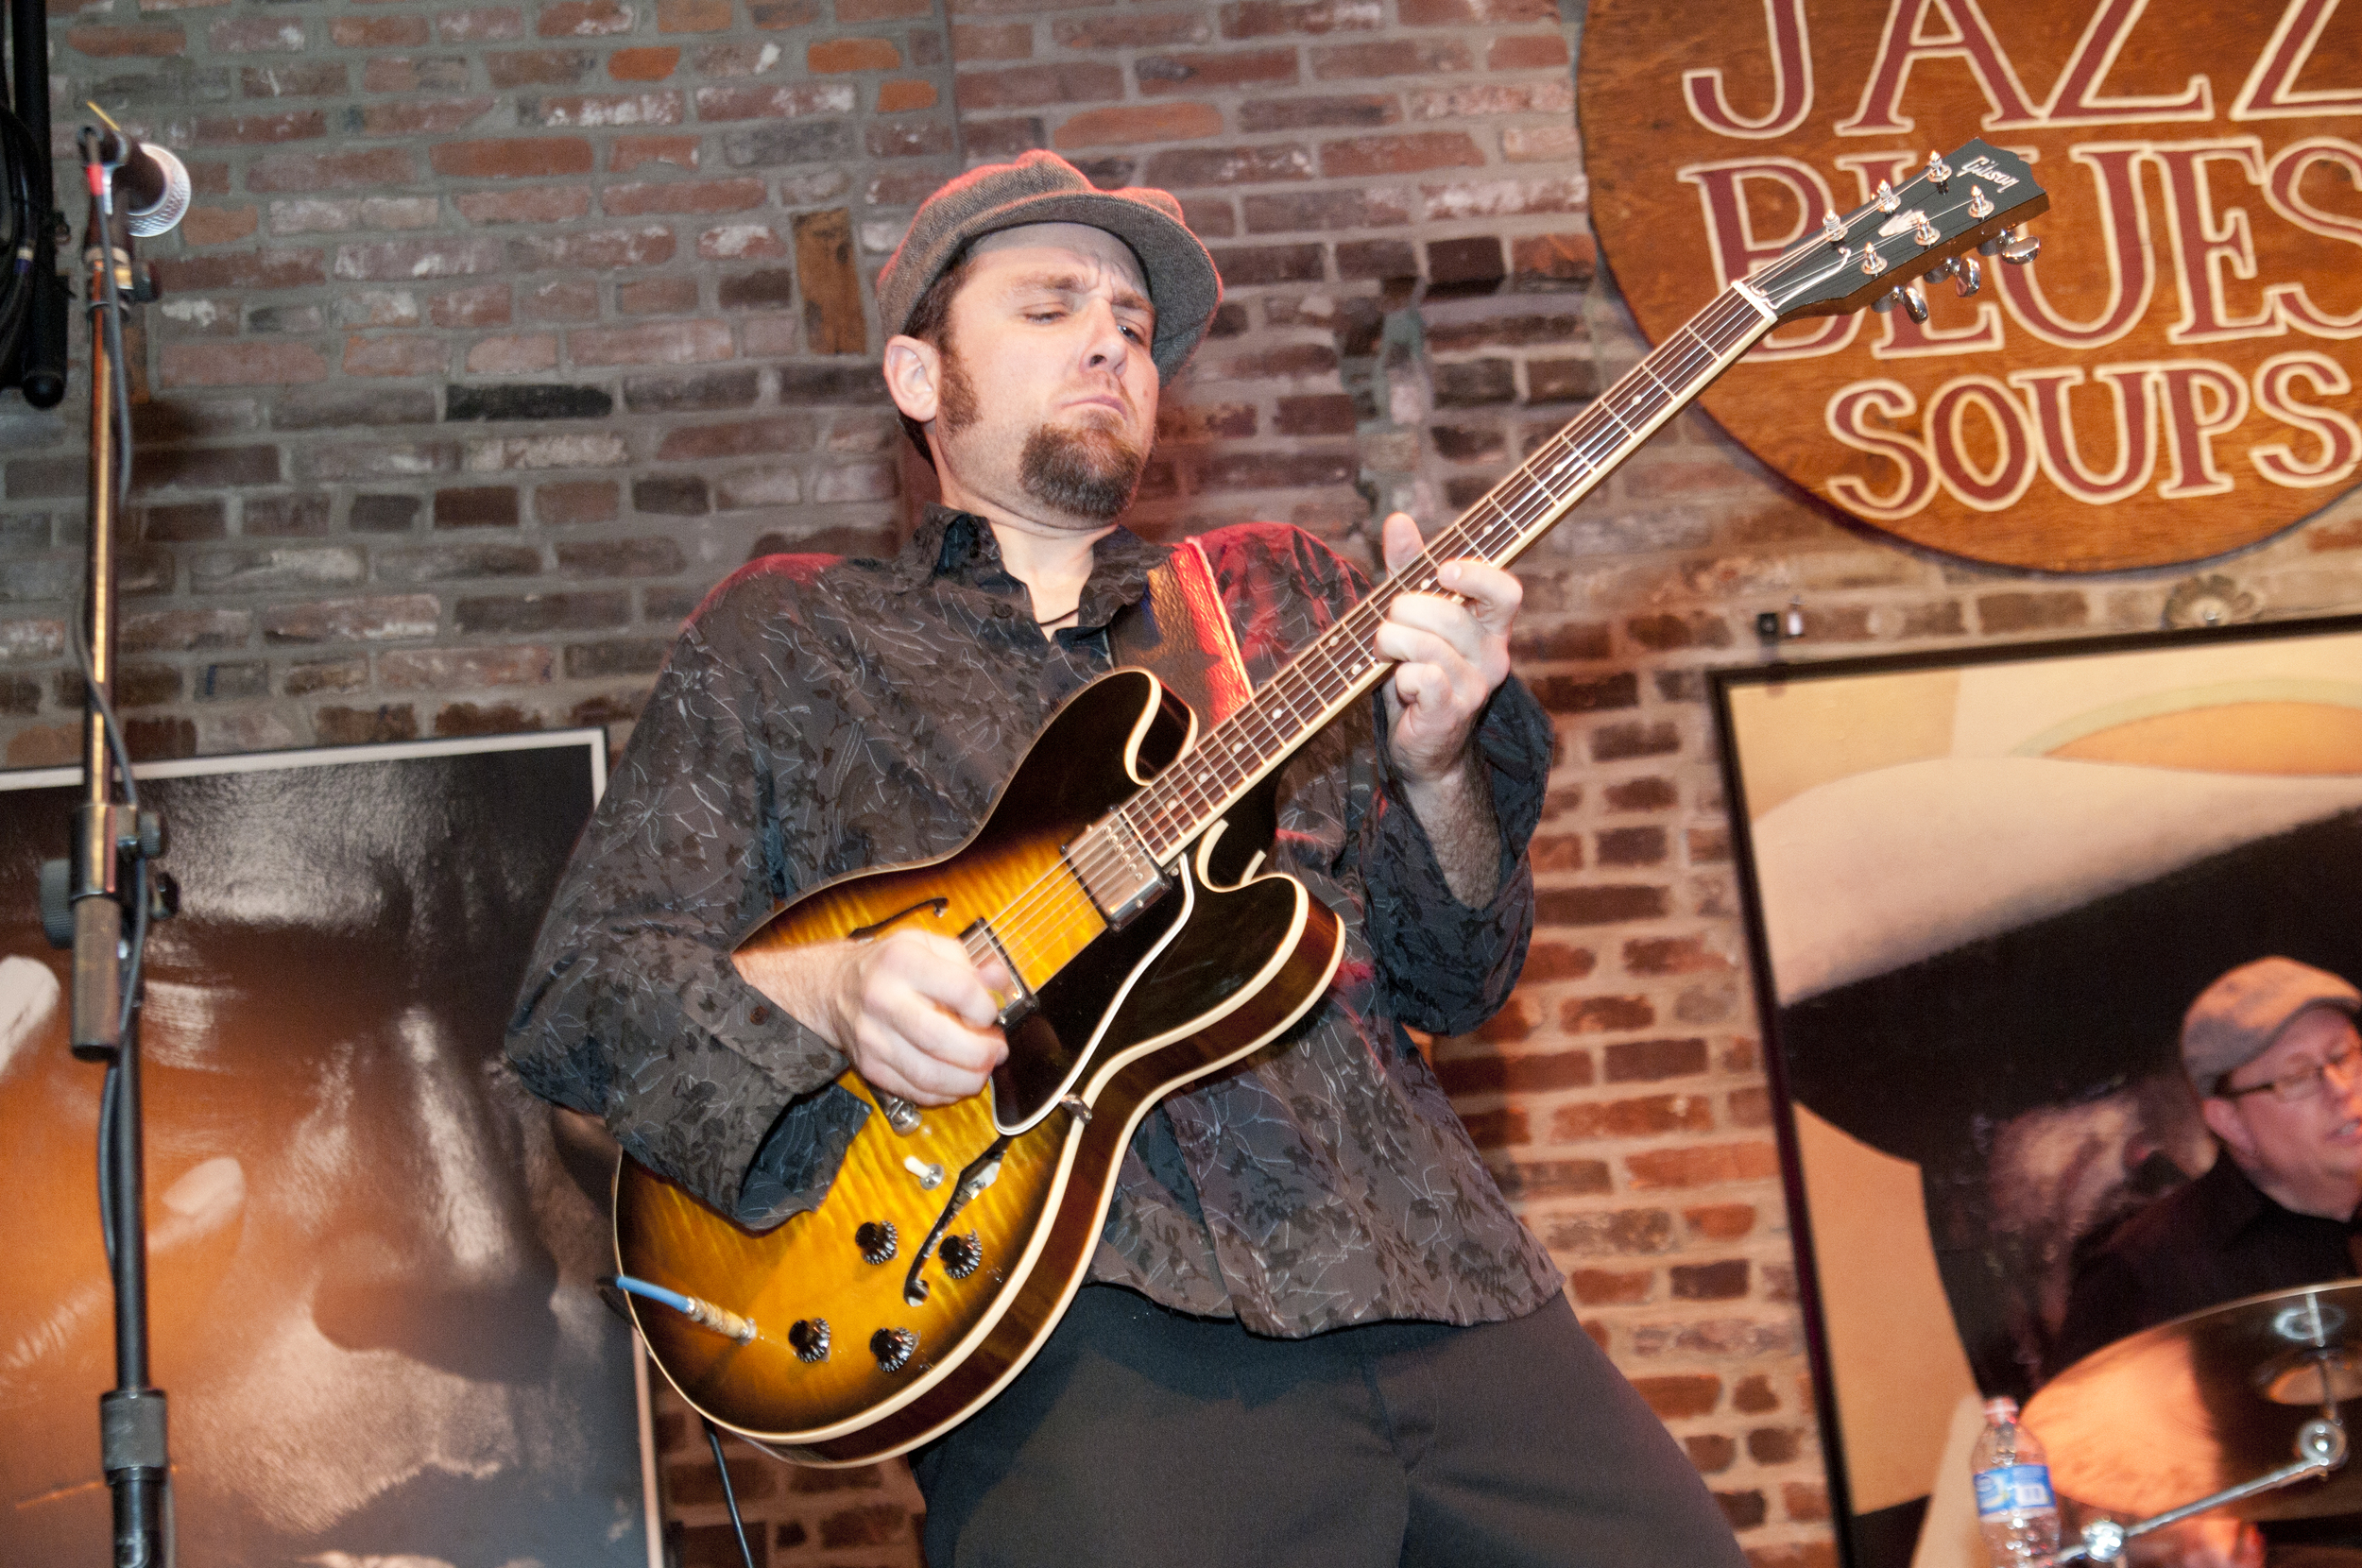 Jeff Jensen at BB's Jazz Blues and Soups